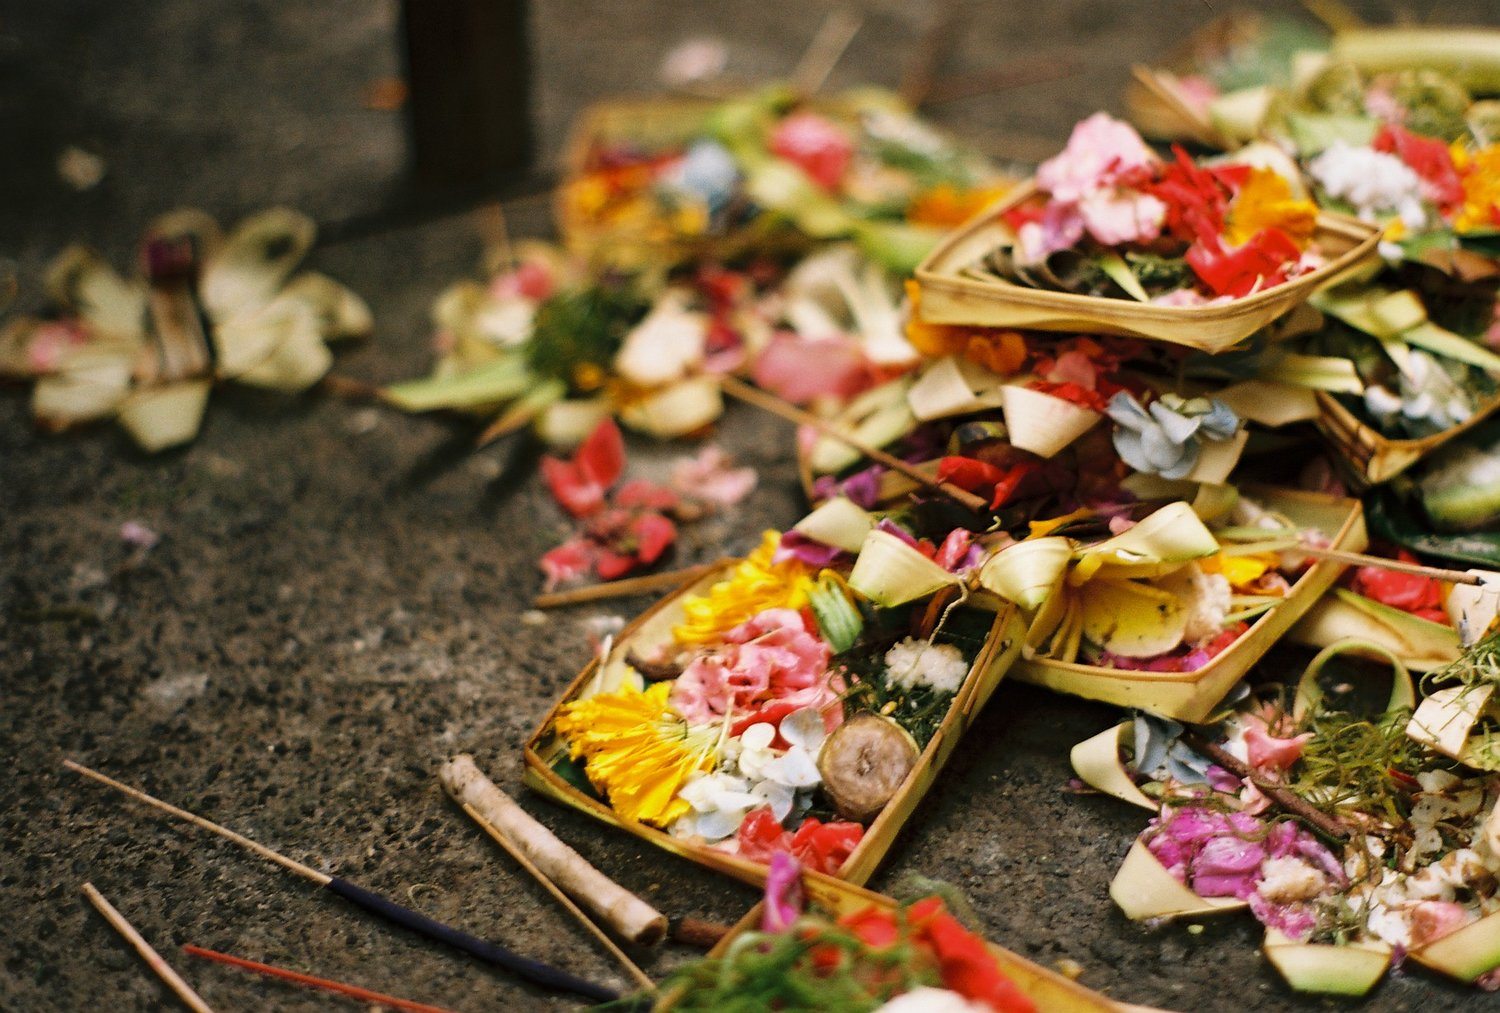 Offerings Ubud Bali Analogue Travel Photographer